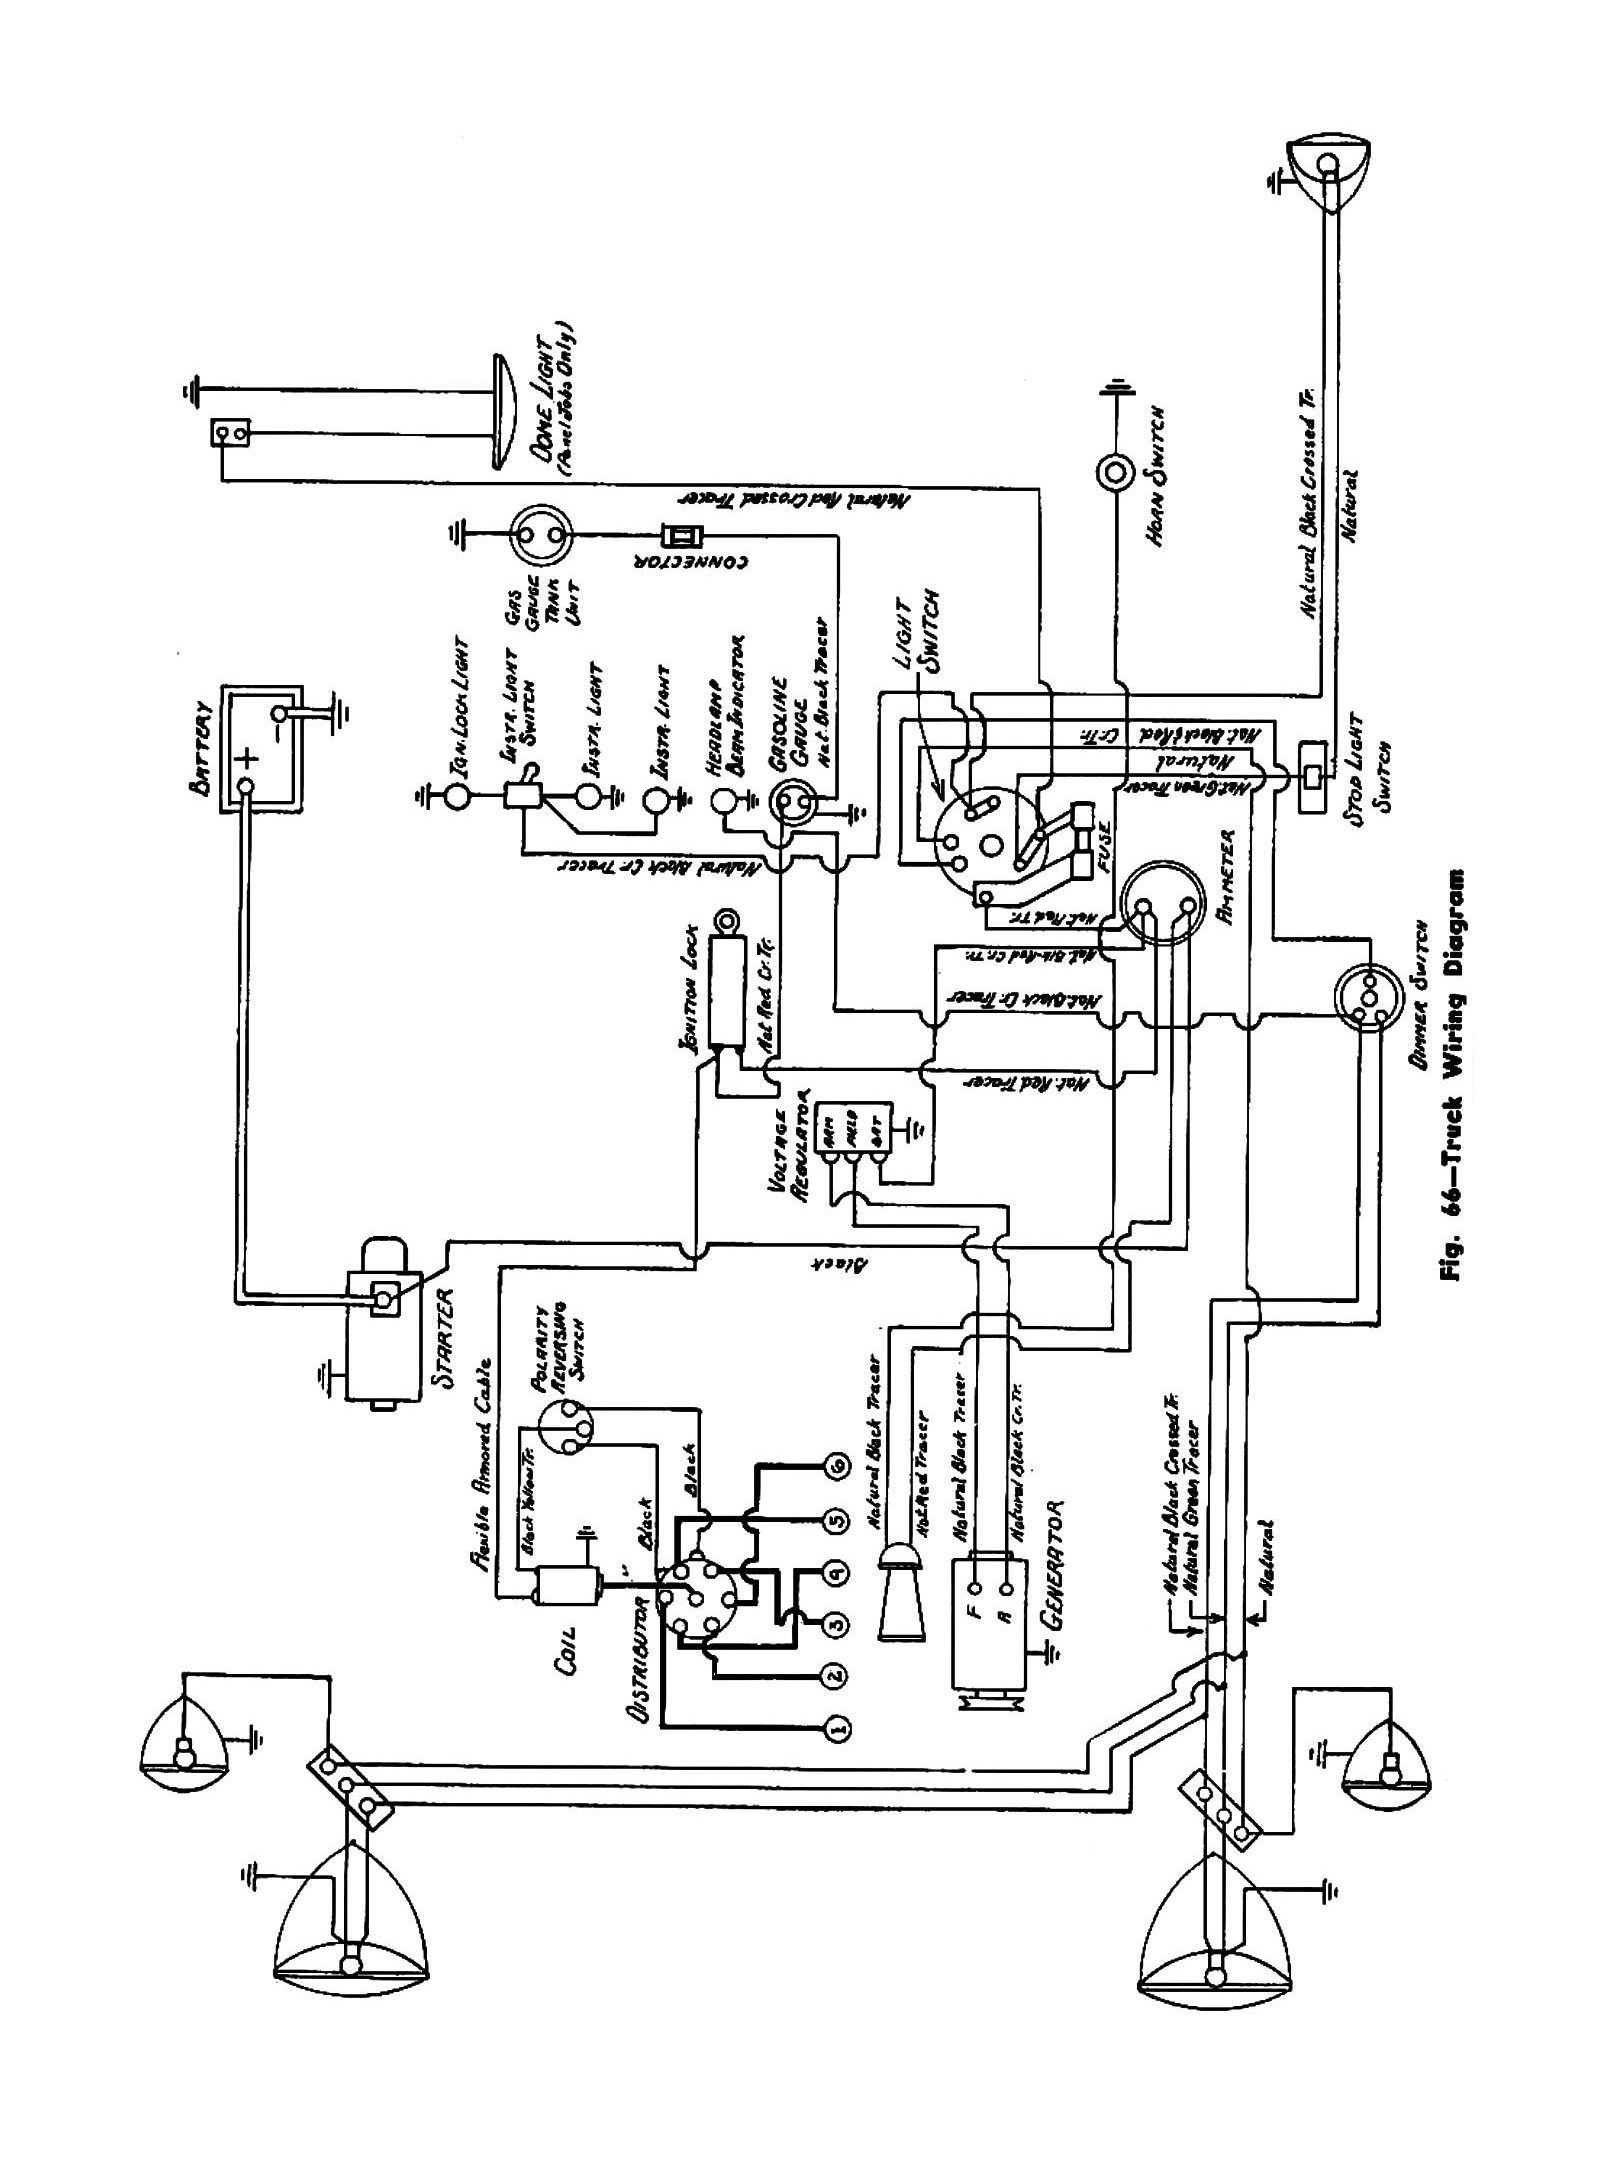 hight resolution of 1954 dodge truck wiring harness wiring diagram paper 1953 dodge pickup wiring diagram wiring diagram inside